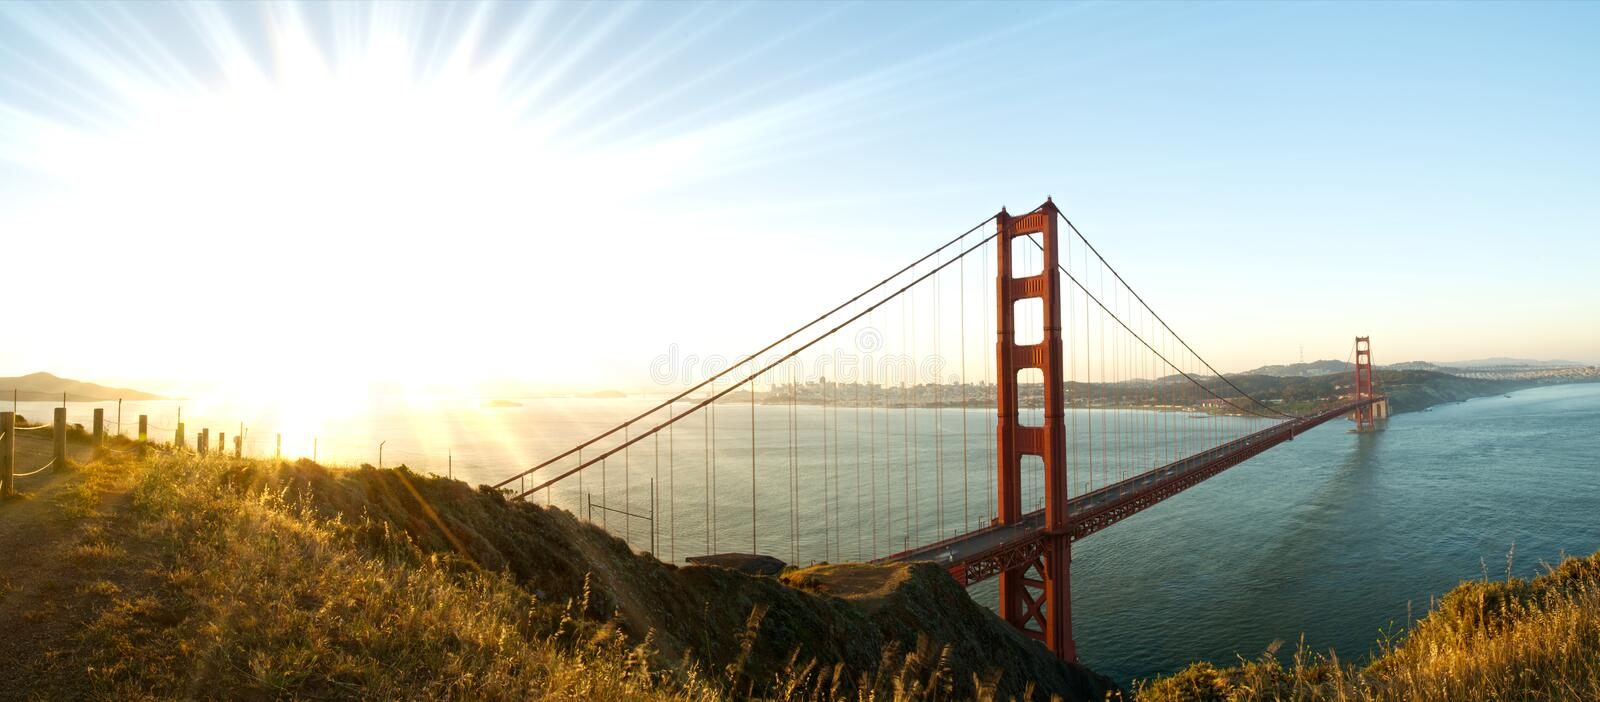 Panorama van Golden gate bridge, San Francisco in Dawn royalty-vrije stock afbeeldingen